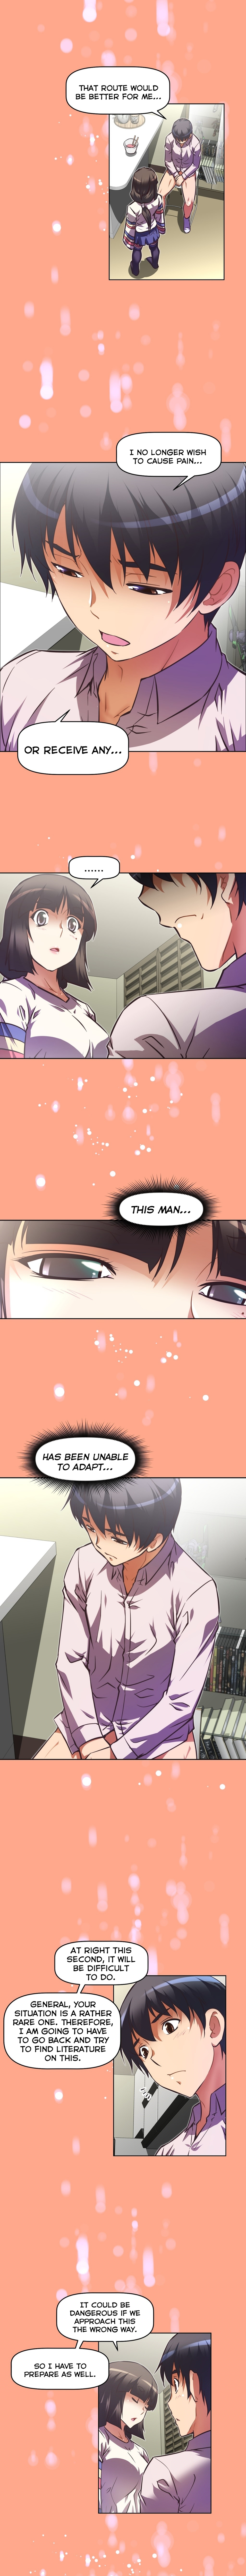 Brawling Go - Chapter 54